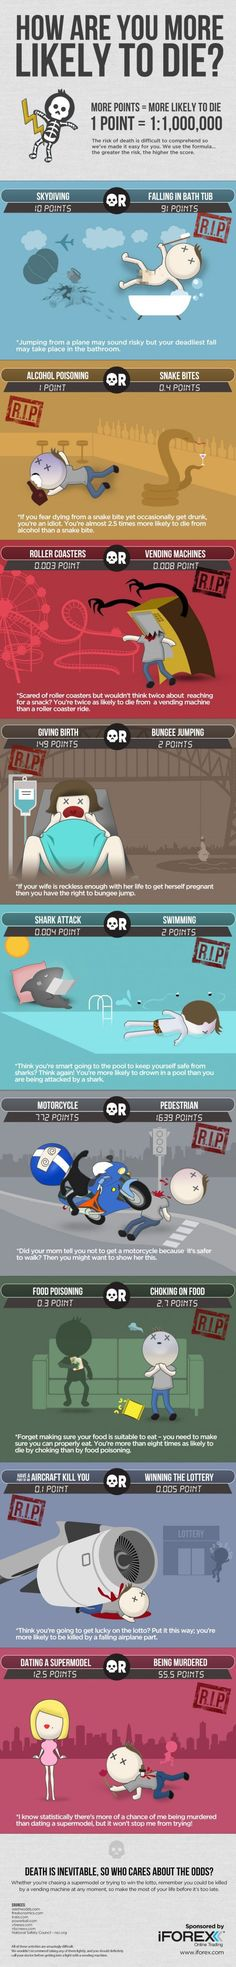 Trading infographic : How Are You More Likely To Die? [Infographic] The risk of death is difficult to